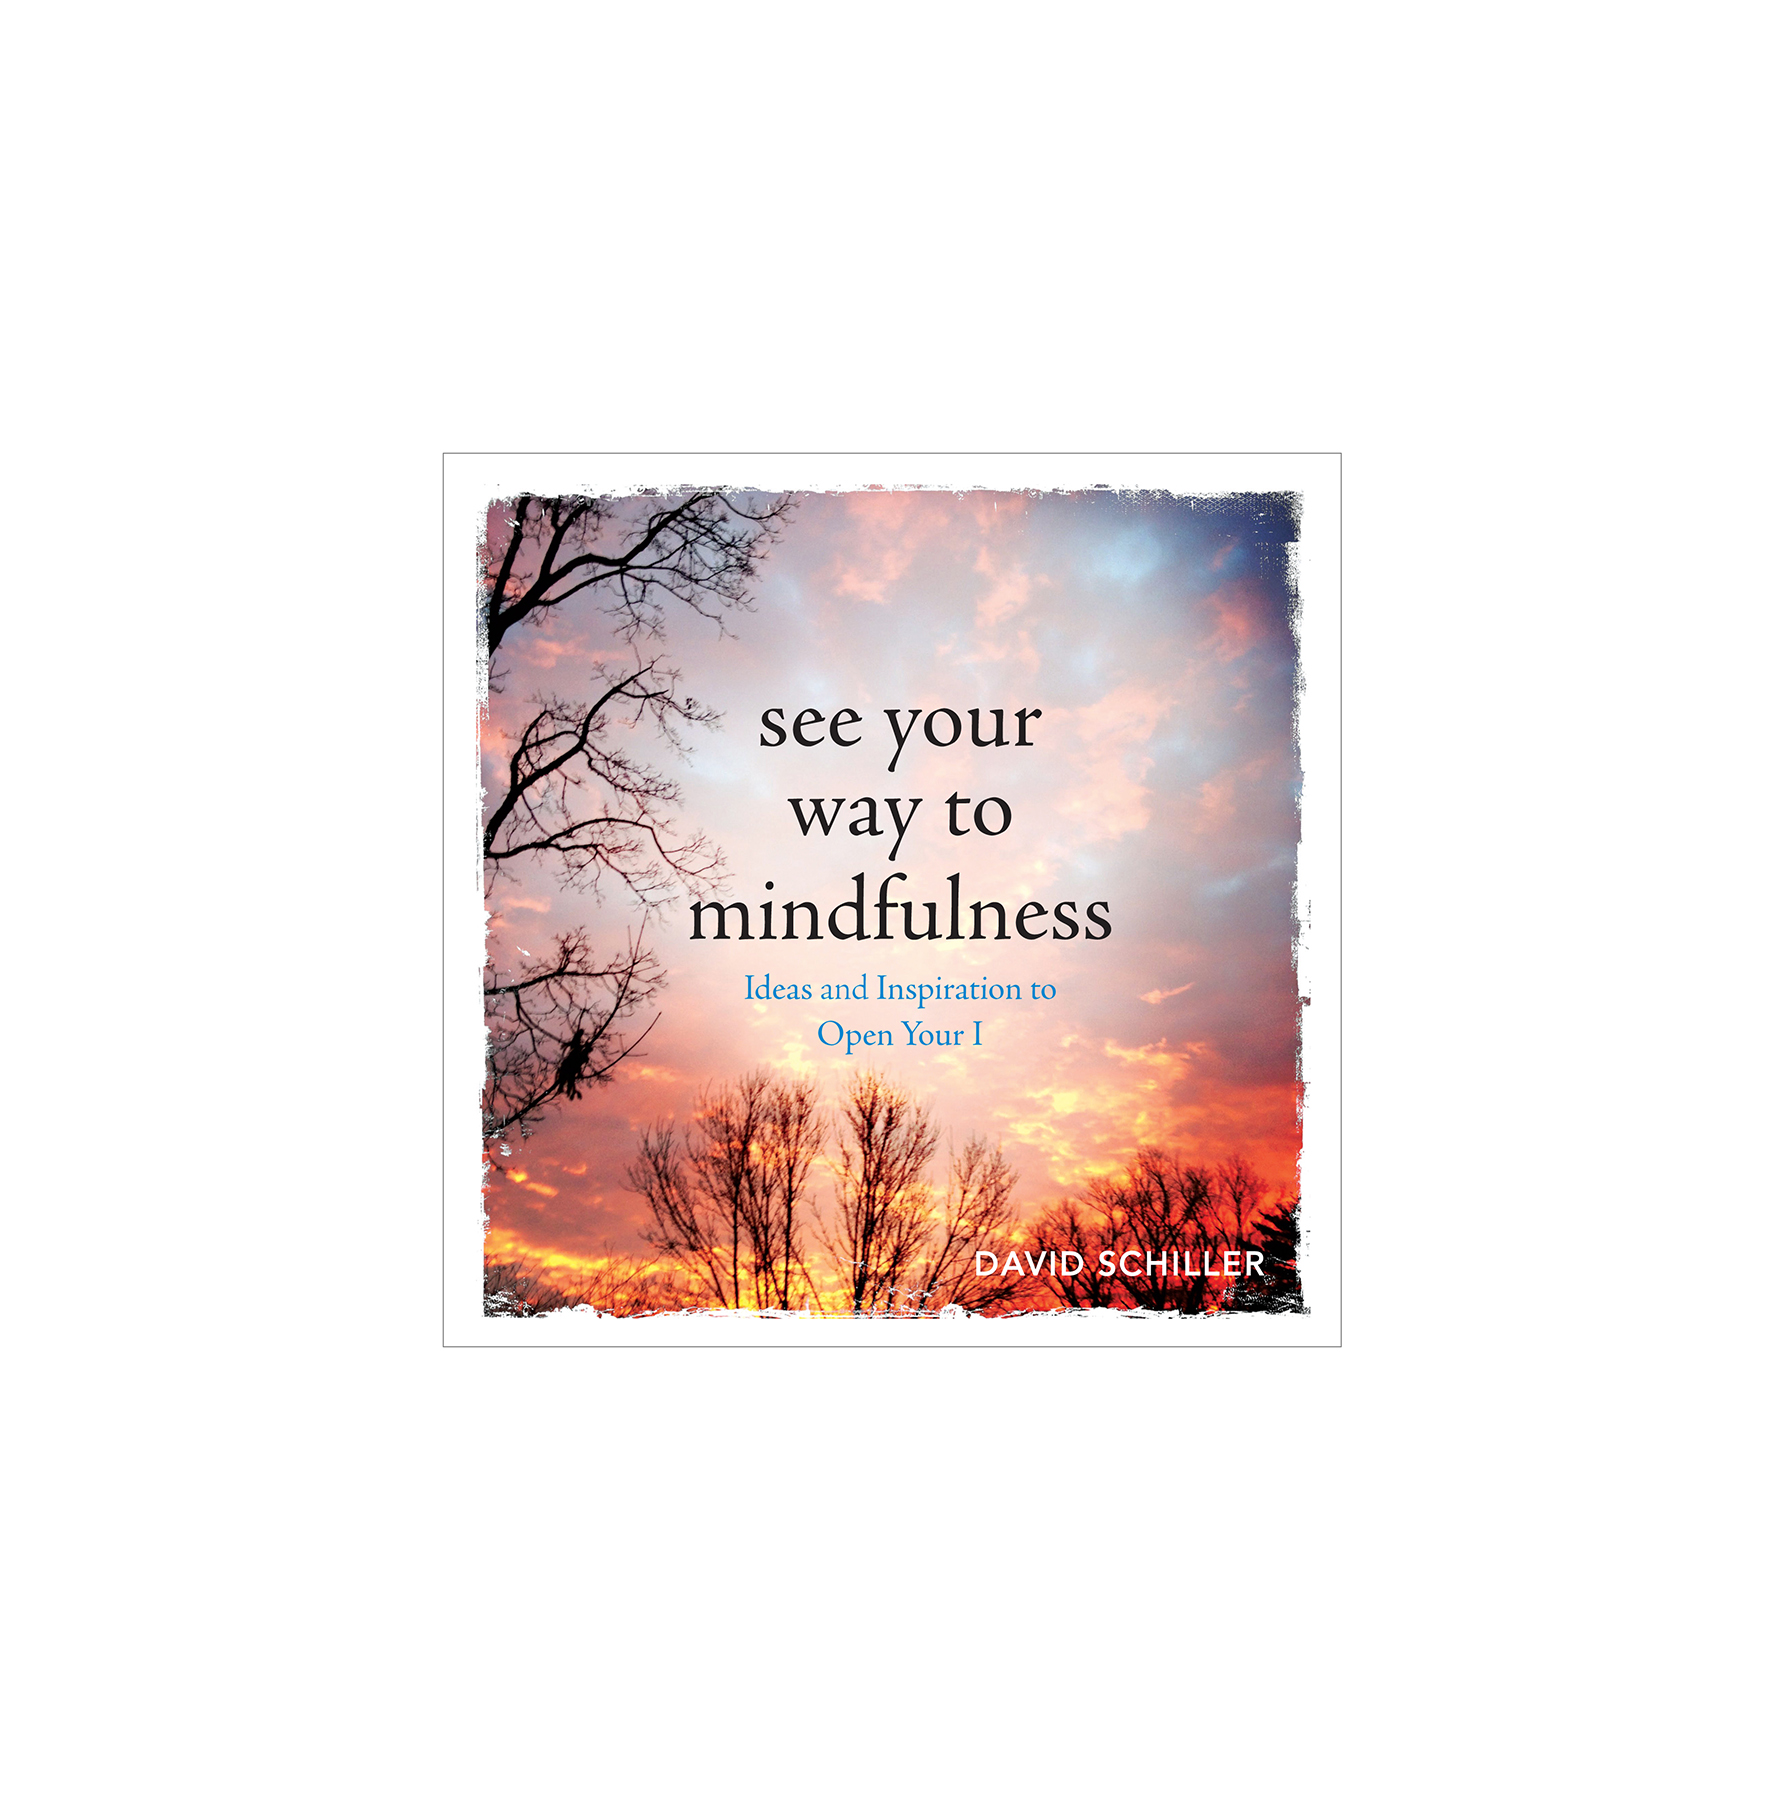 See Your Way to Mindfulness, by David Schiller